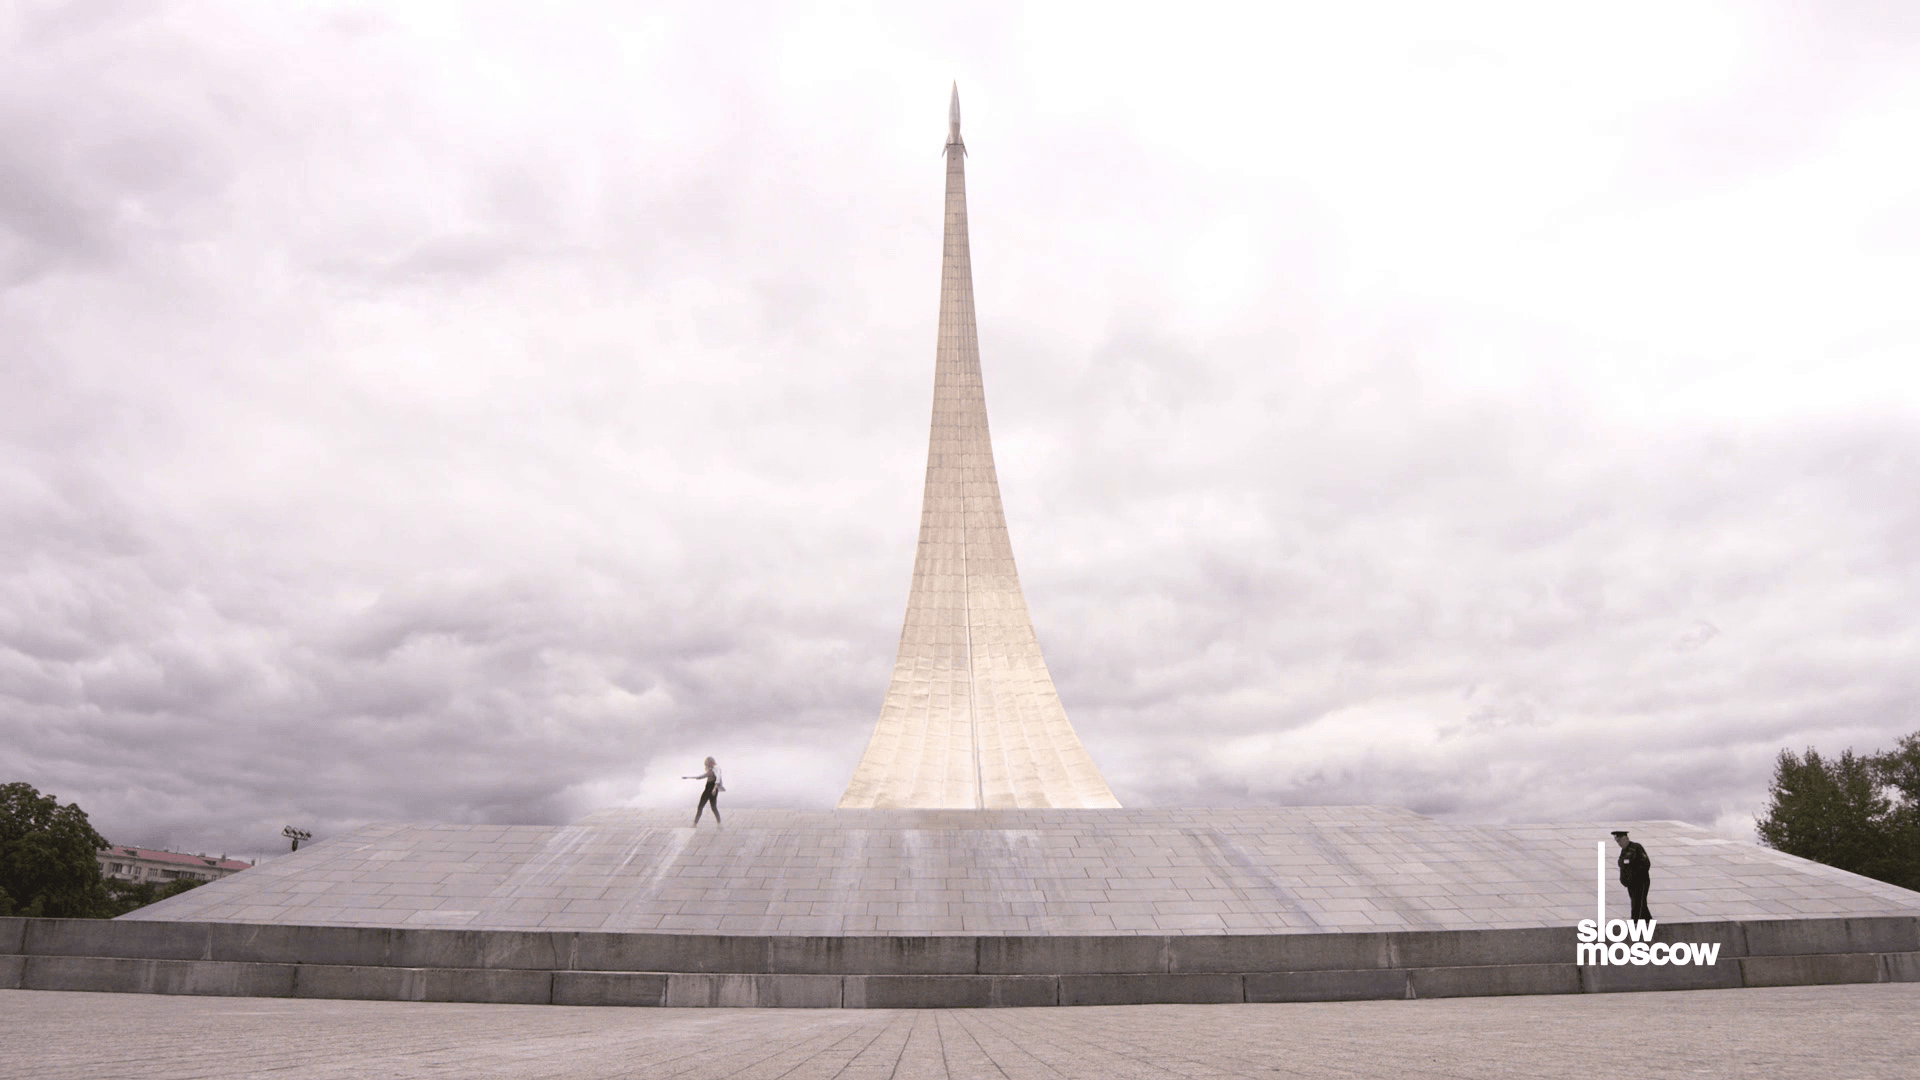 Slow Moscow - Copyright Romain Quirot (9).png